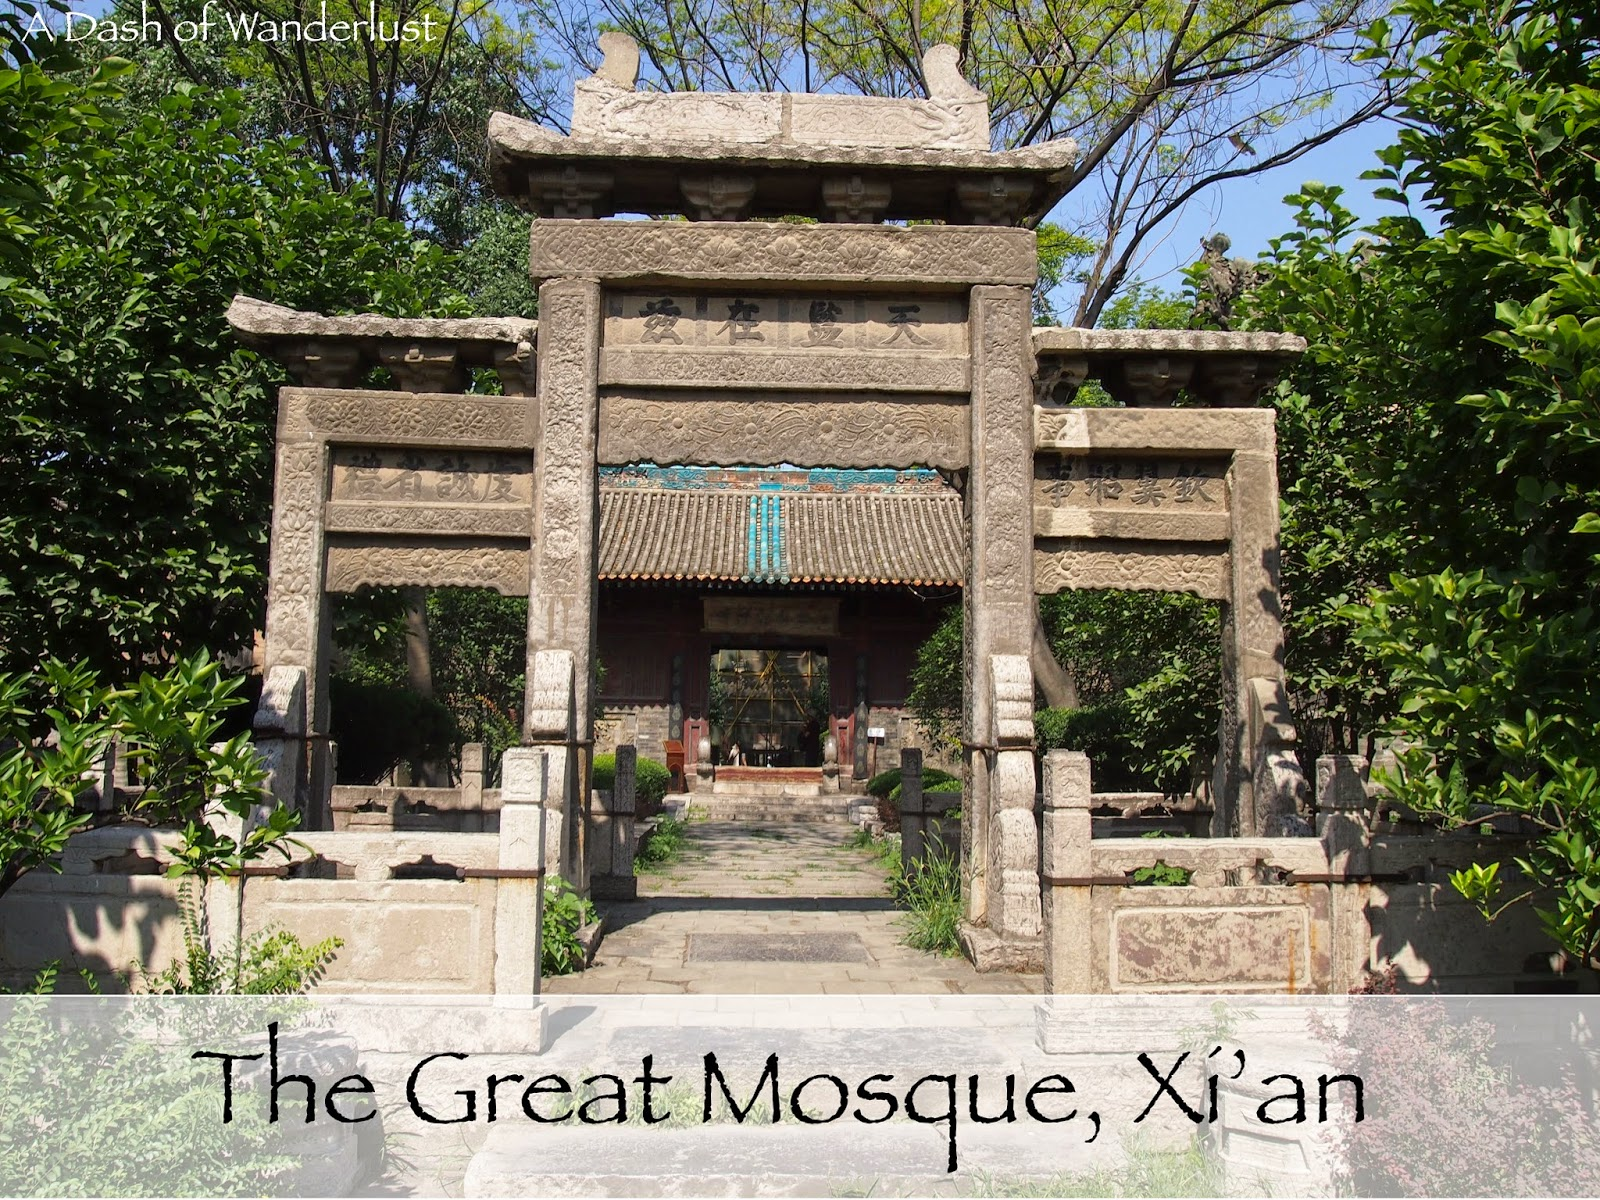 The Great Mosque in Xi'an, China